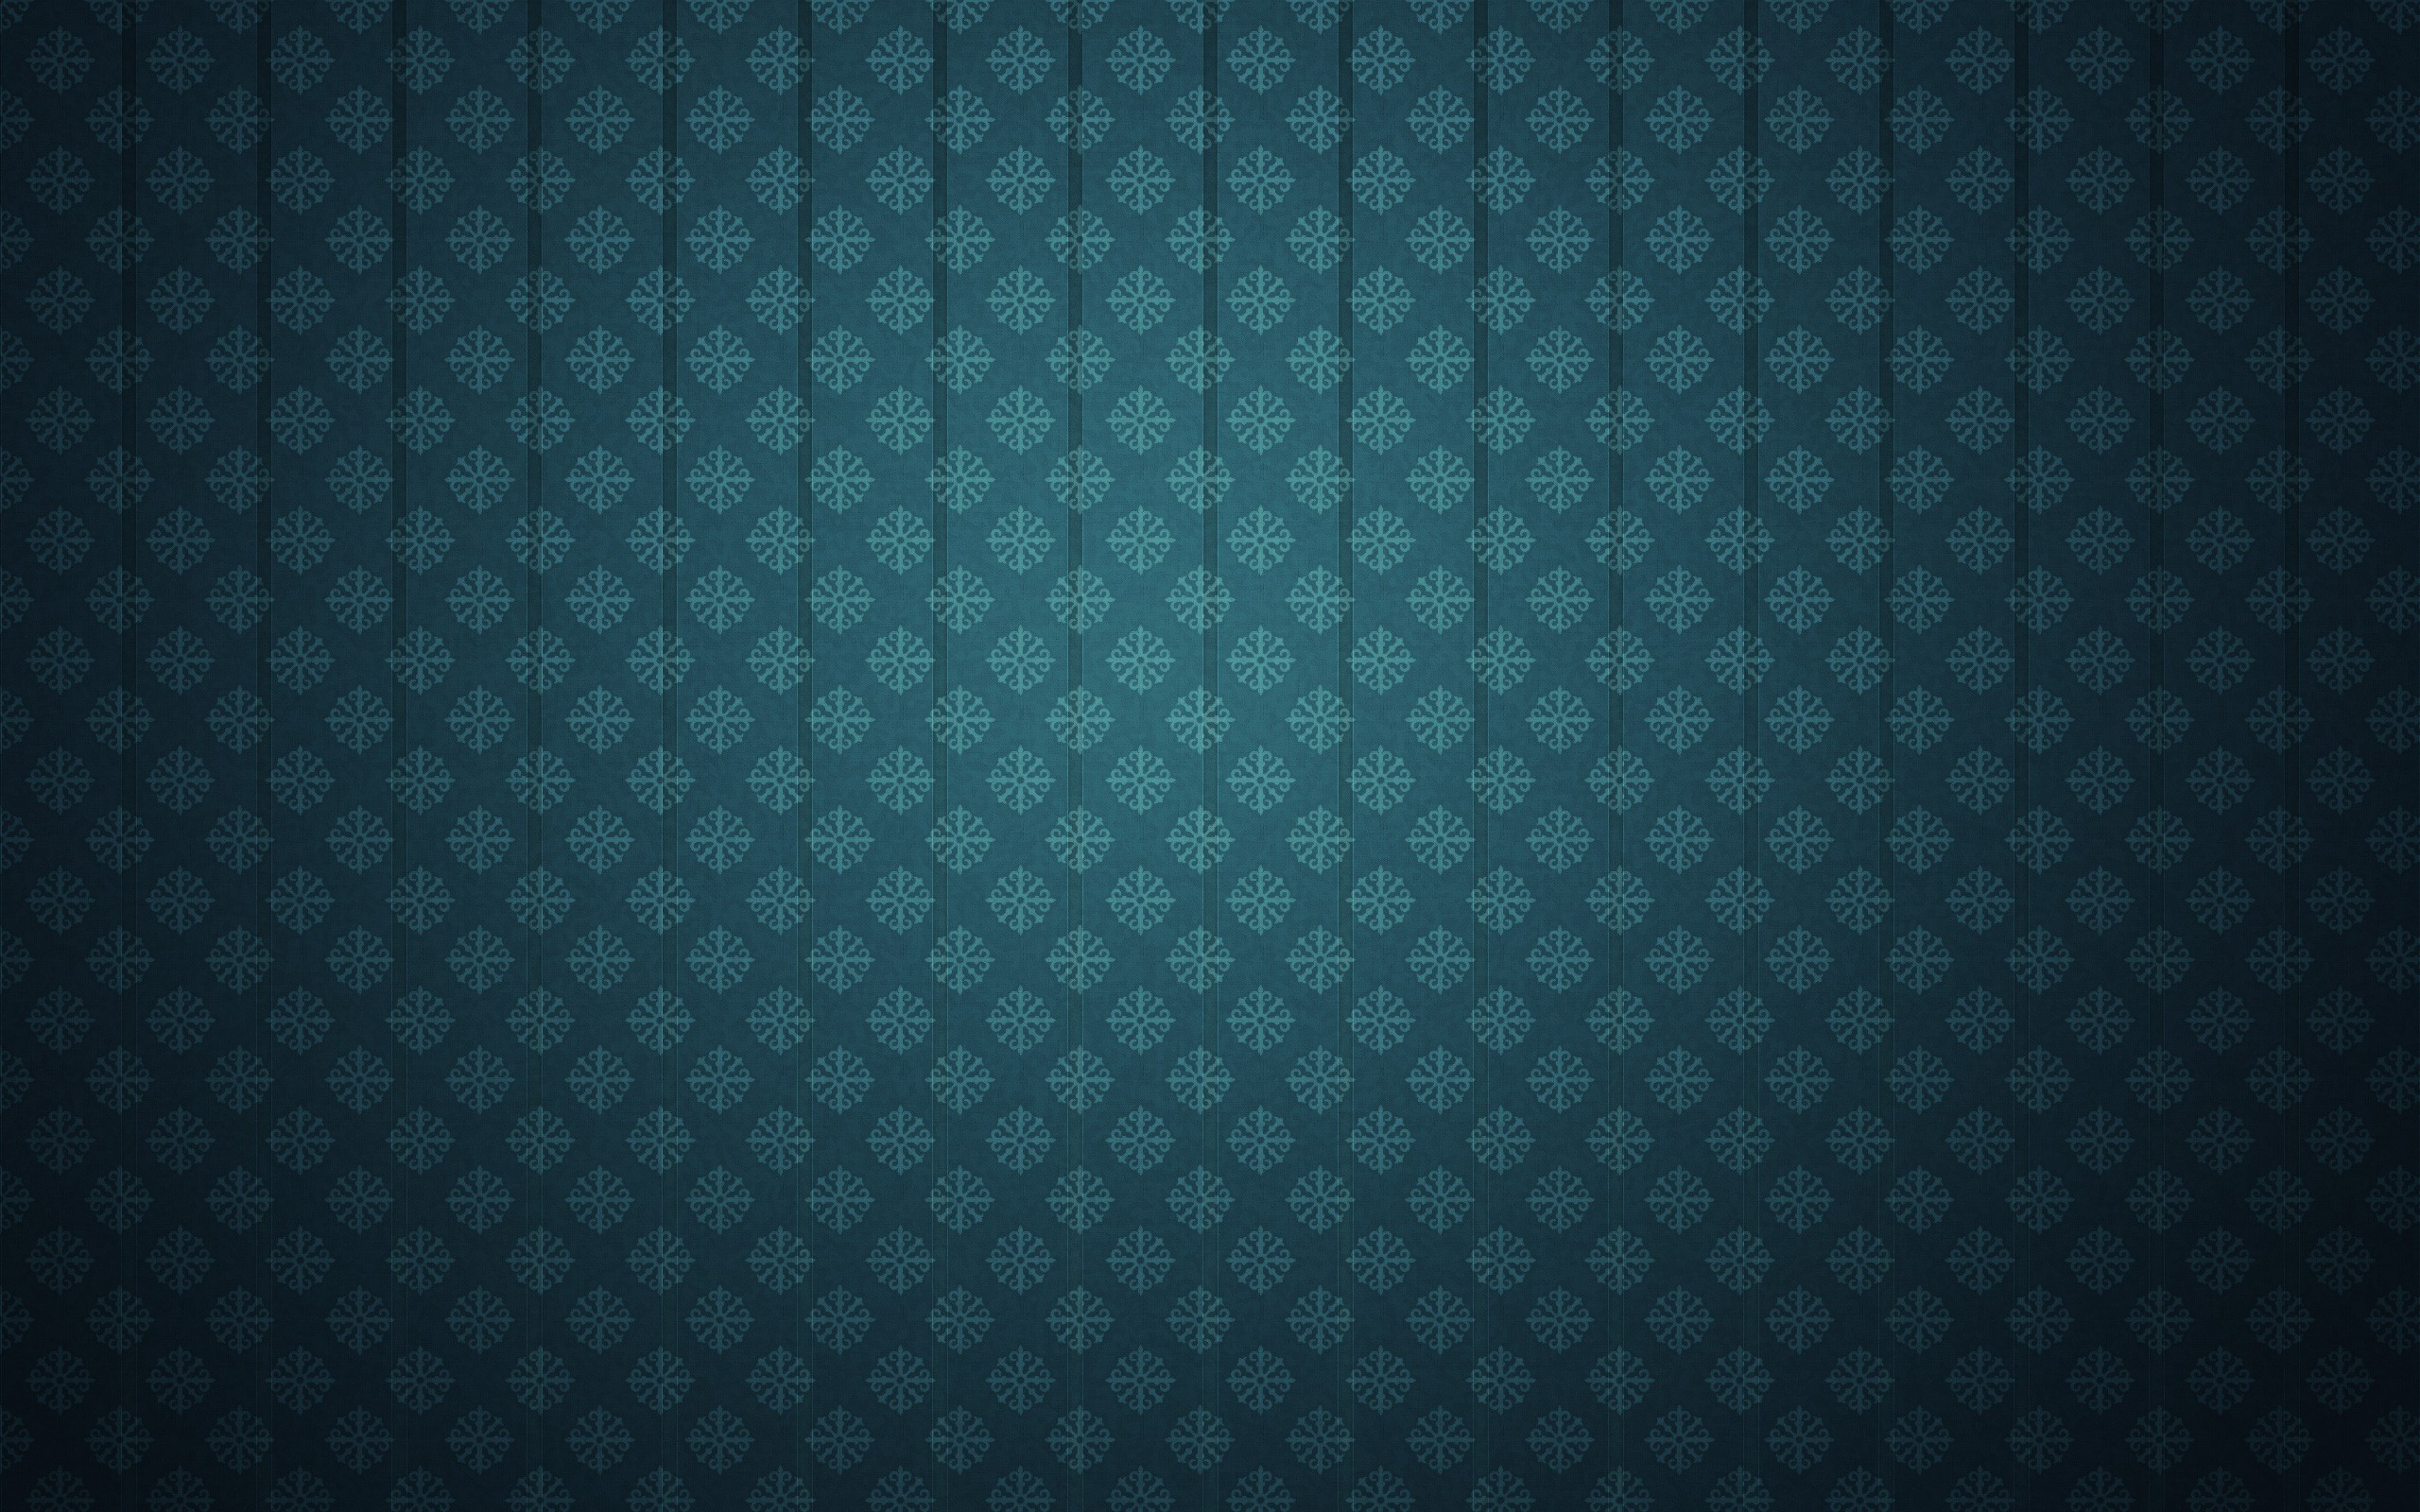 Faded Wallpaper 69 Images All Backgrounds Color